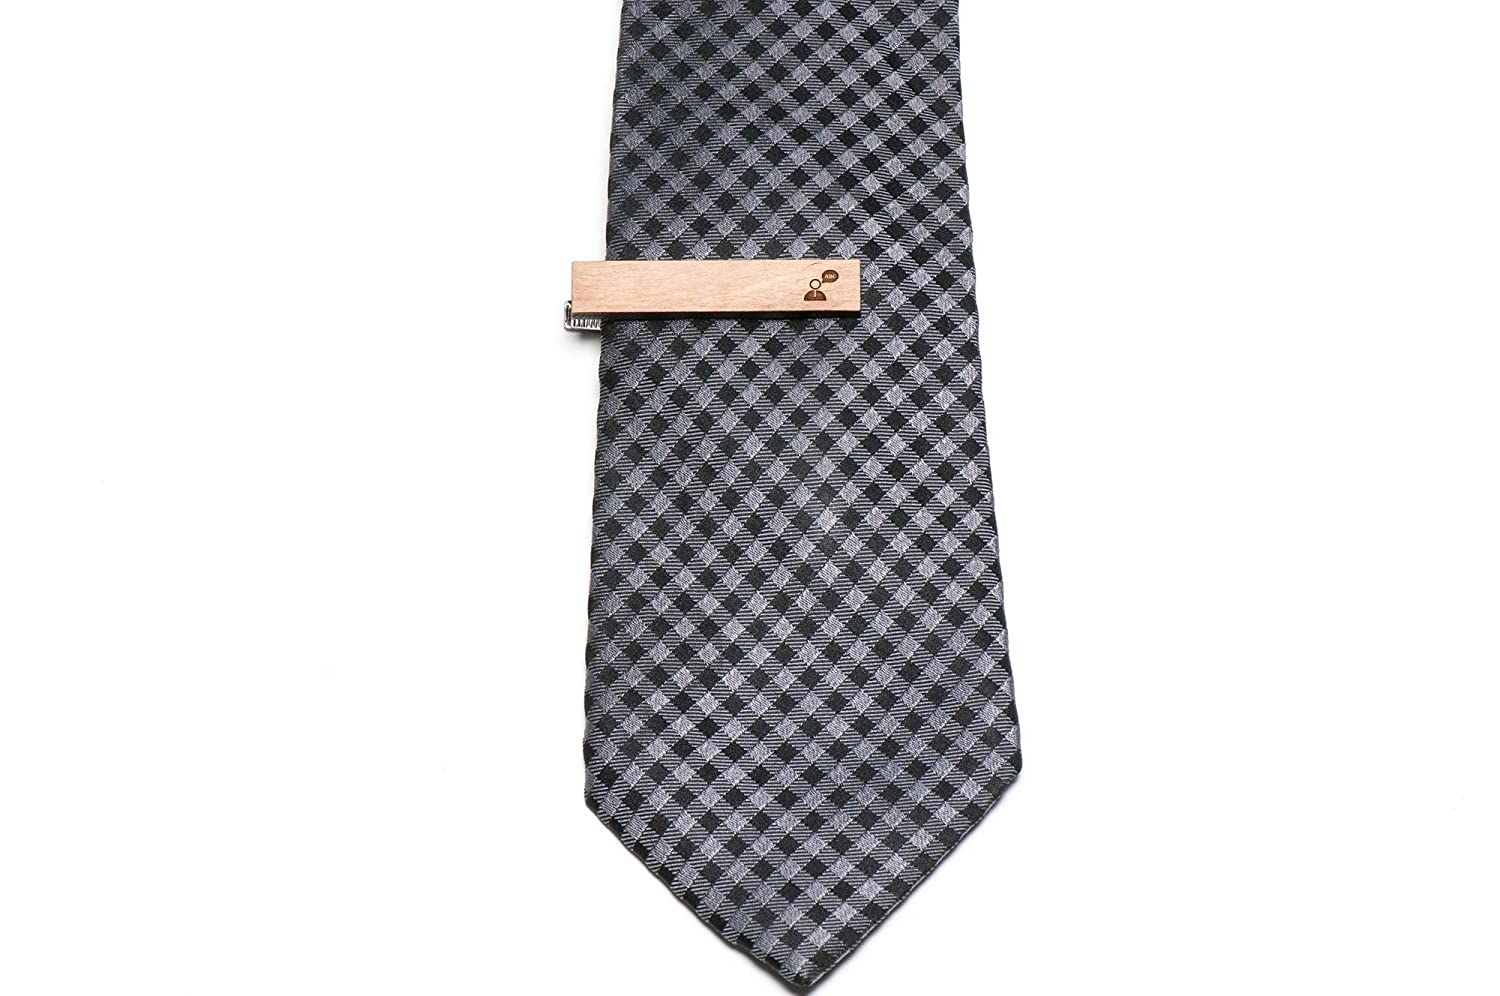 Wooden Accessories Company Wooden Tie Clips with Laser Engraved English Teacher Design Cherry Wood Tie Bar Engraved in The USA